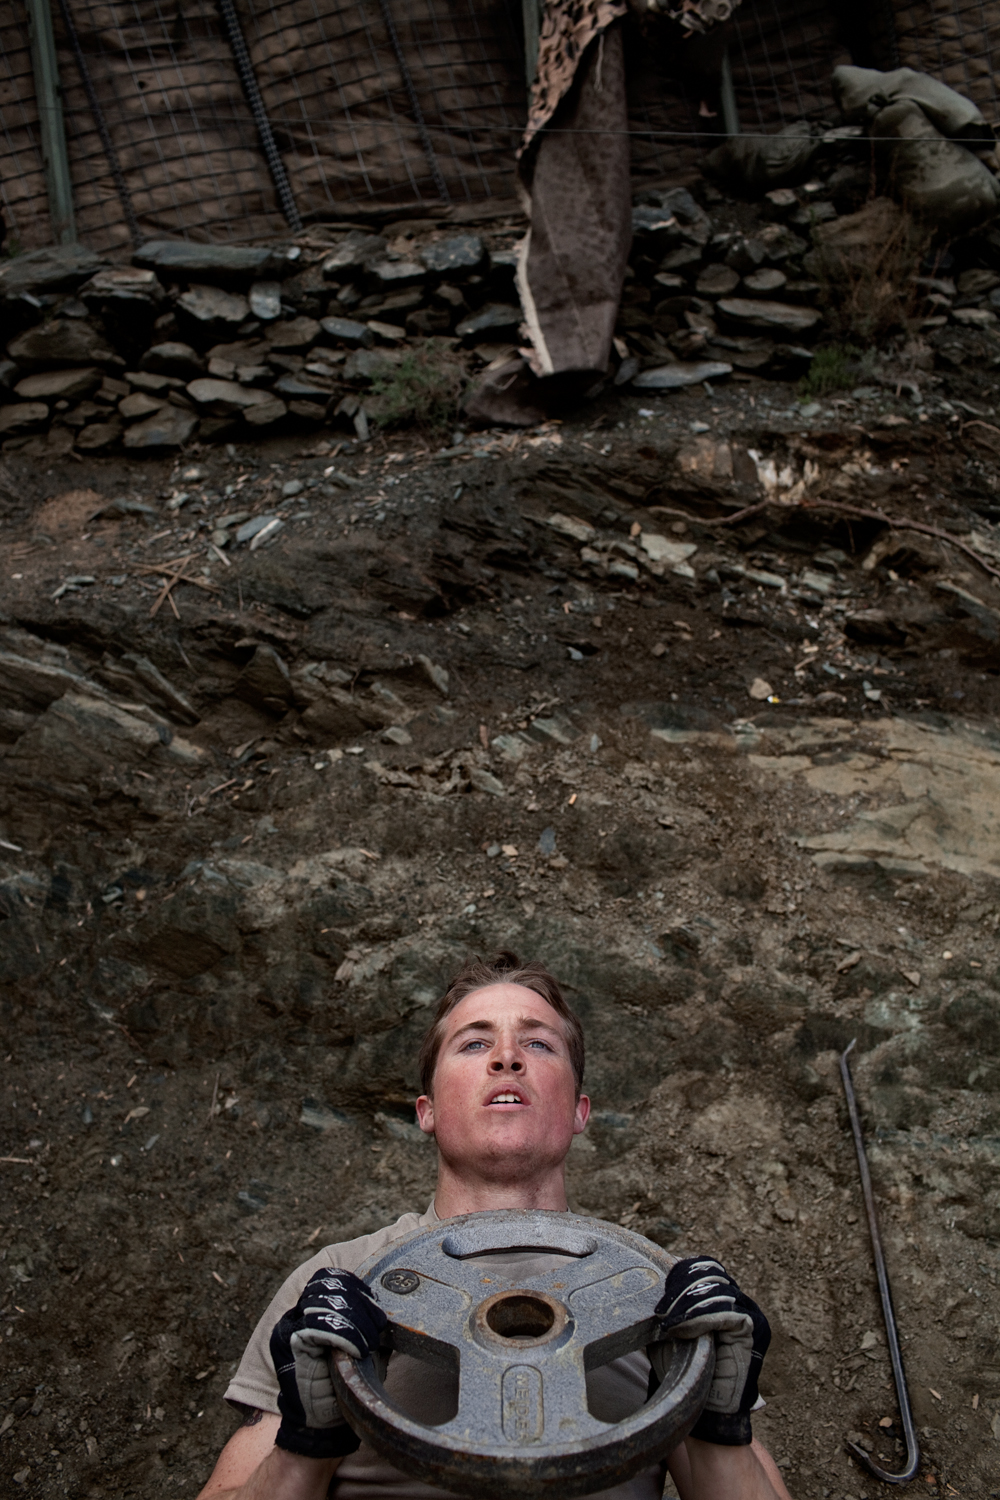 A U.S. Army soldier works out at Observation Post Dallas in the Korengal Valley, Kunar Province, Afghanistan.